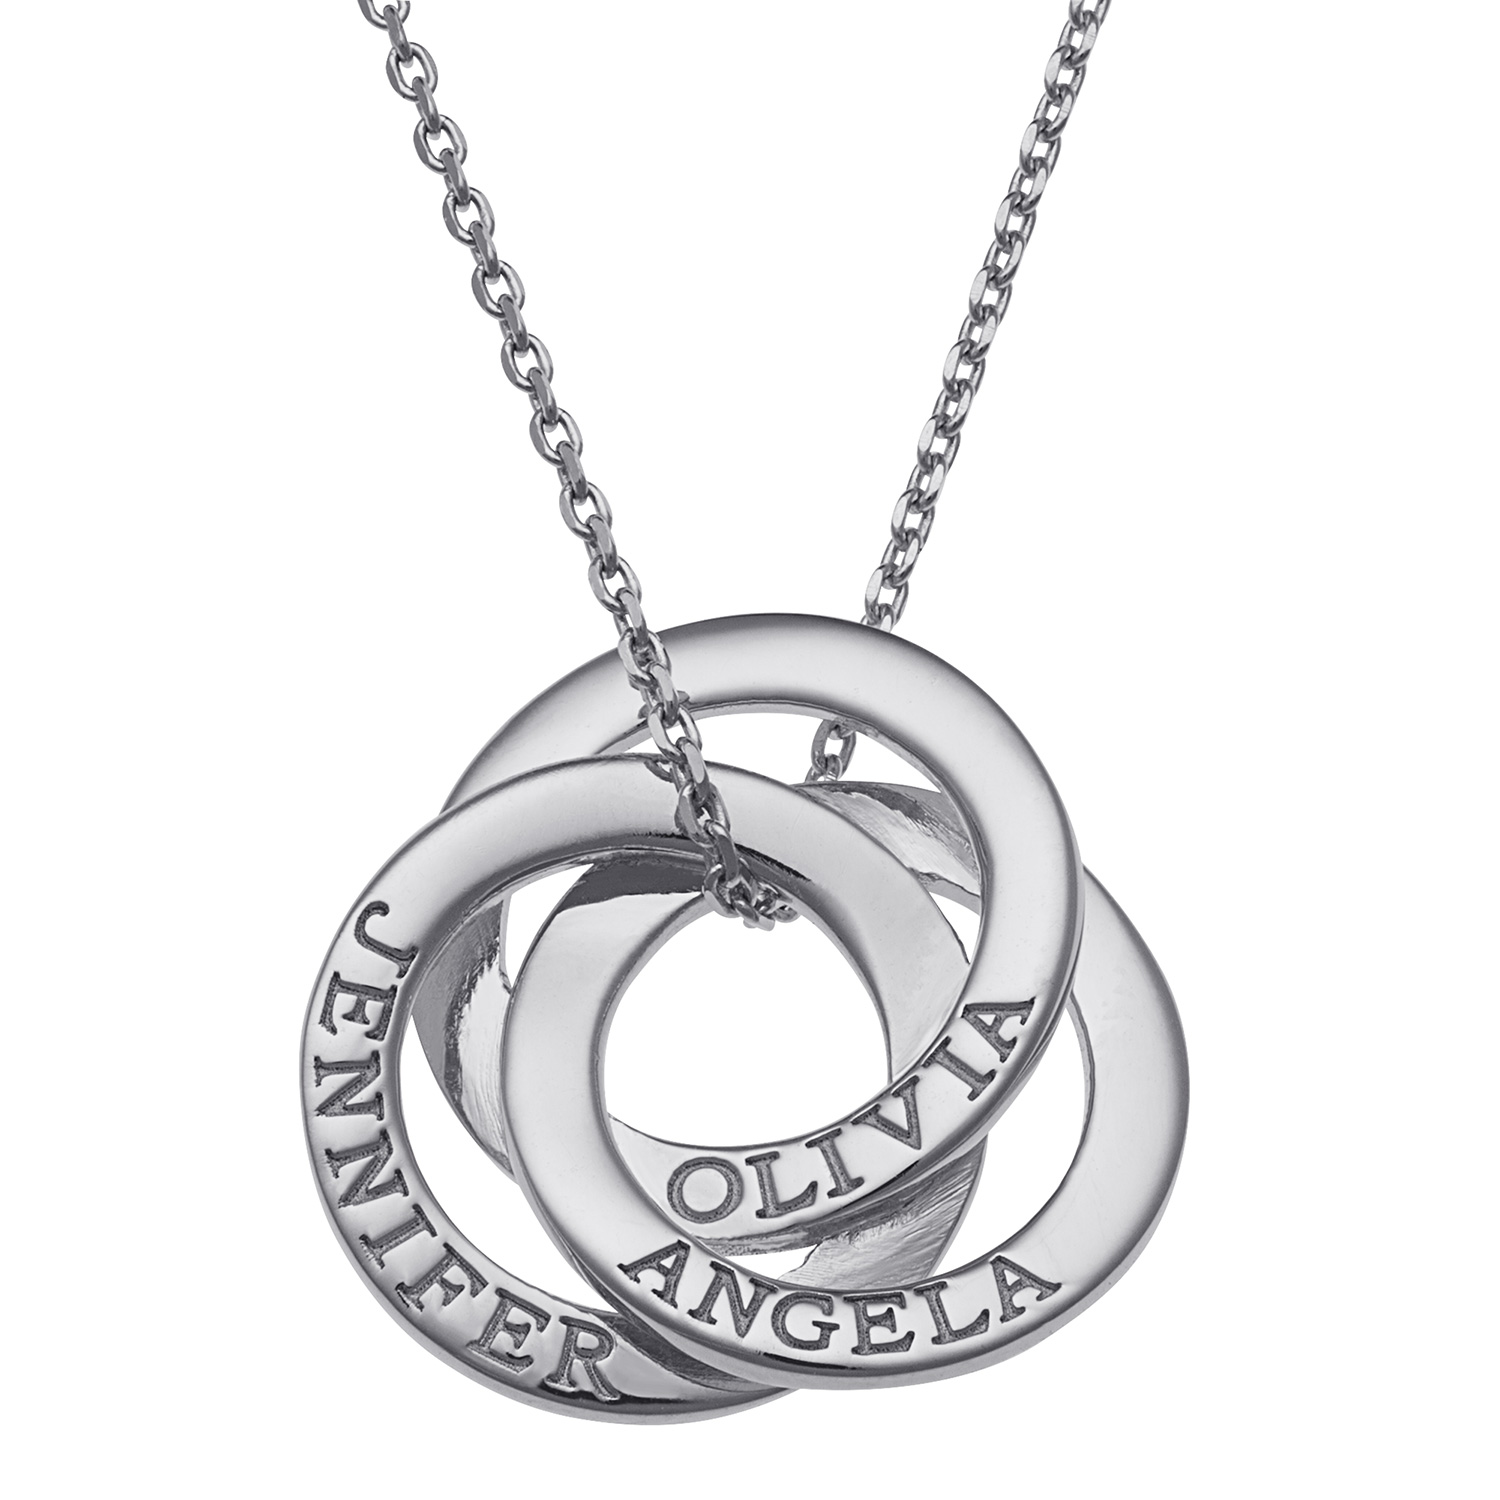 Family Jewelry Personalized Mother's Sterling Silver or Gold over Silver Interlocking Rings Engraved Names Necklace, 18""